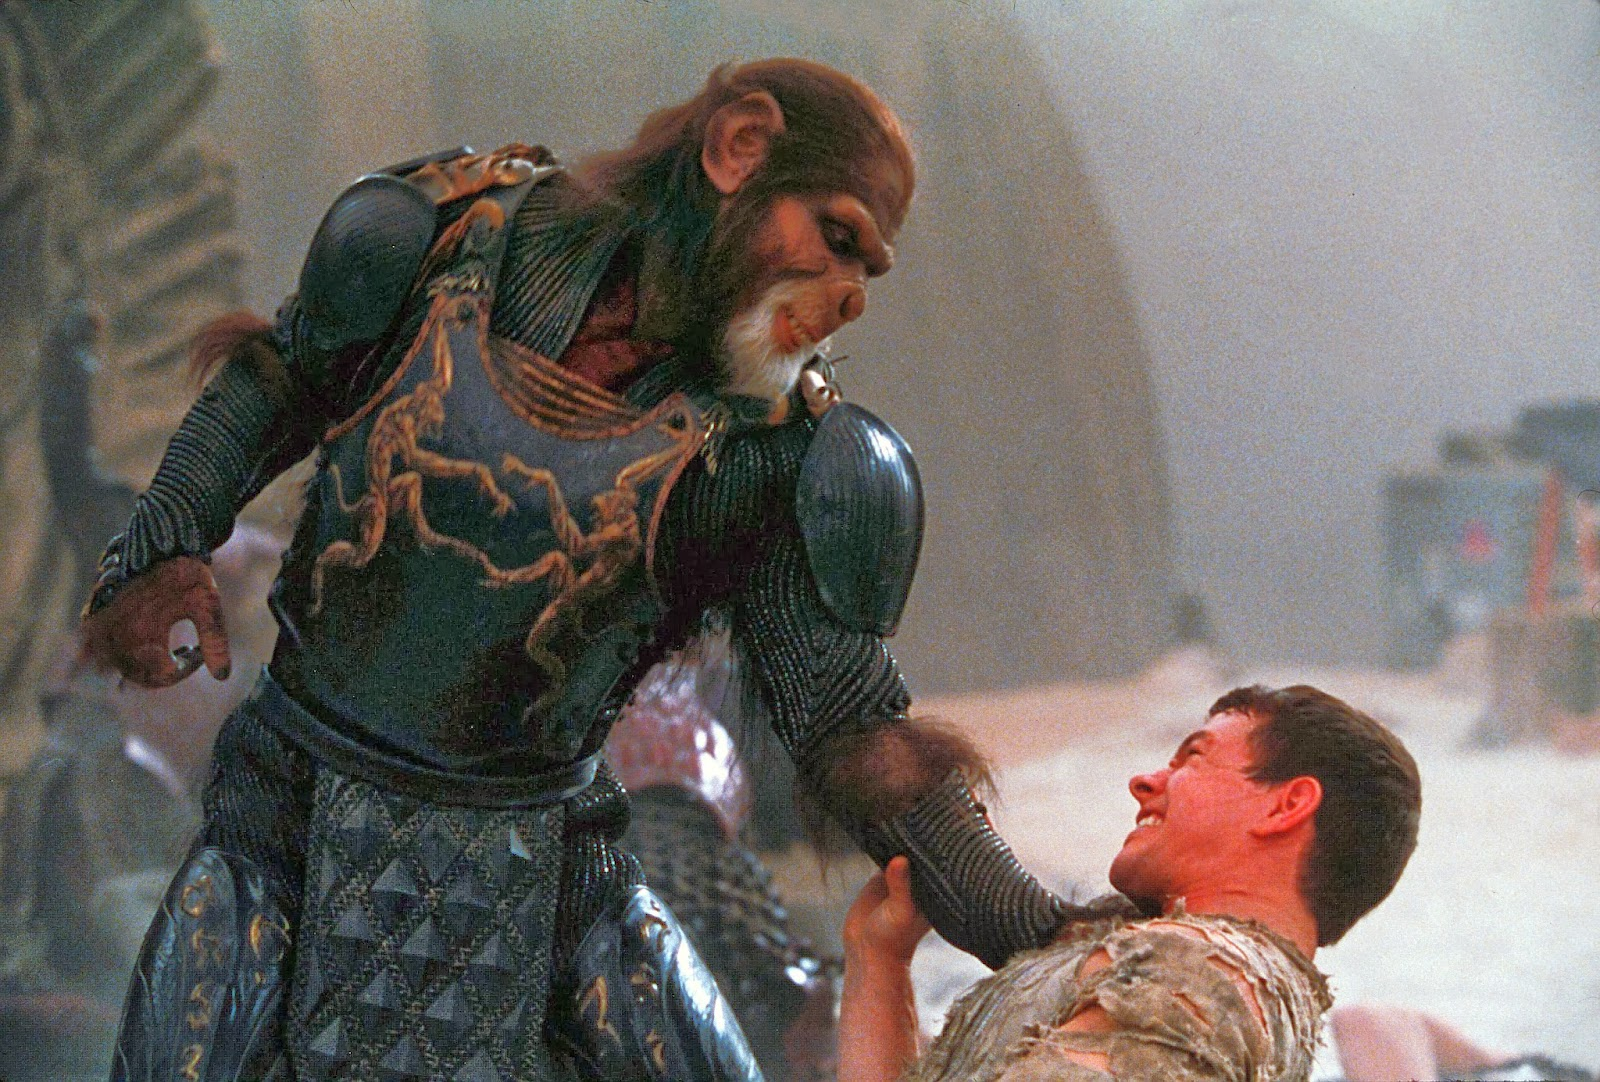 planet of the apes remake mark wahlberg tim roth